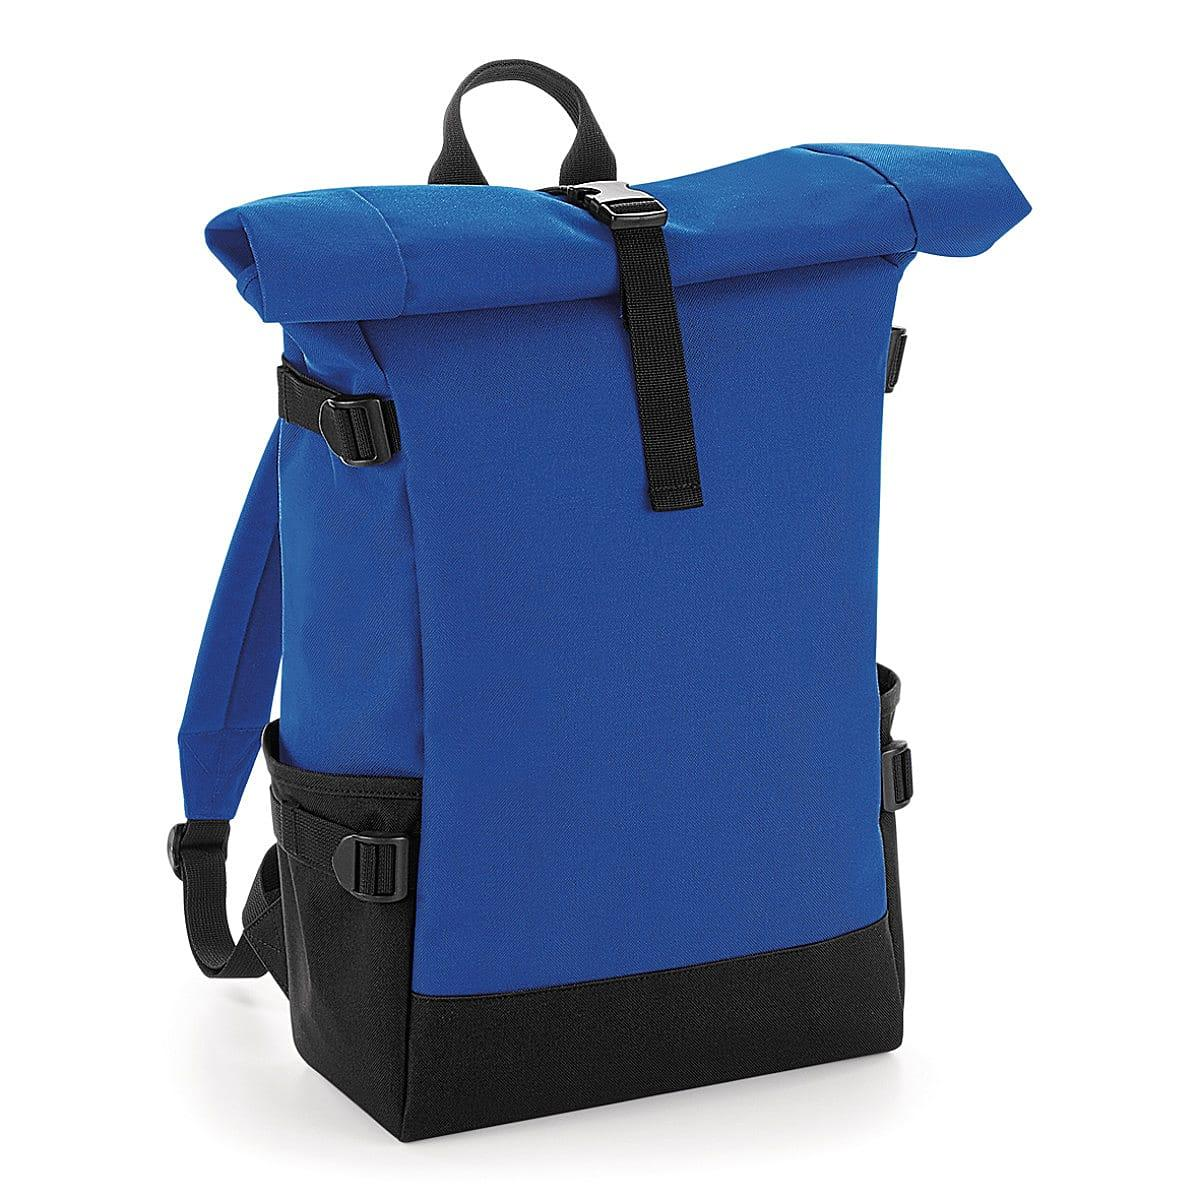 Bagbase Block Roll-Top Backpack in Bright Royal / Black (Product Code: BG858)